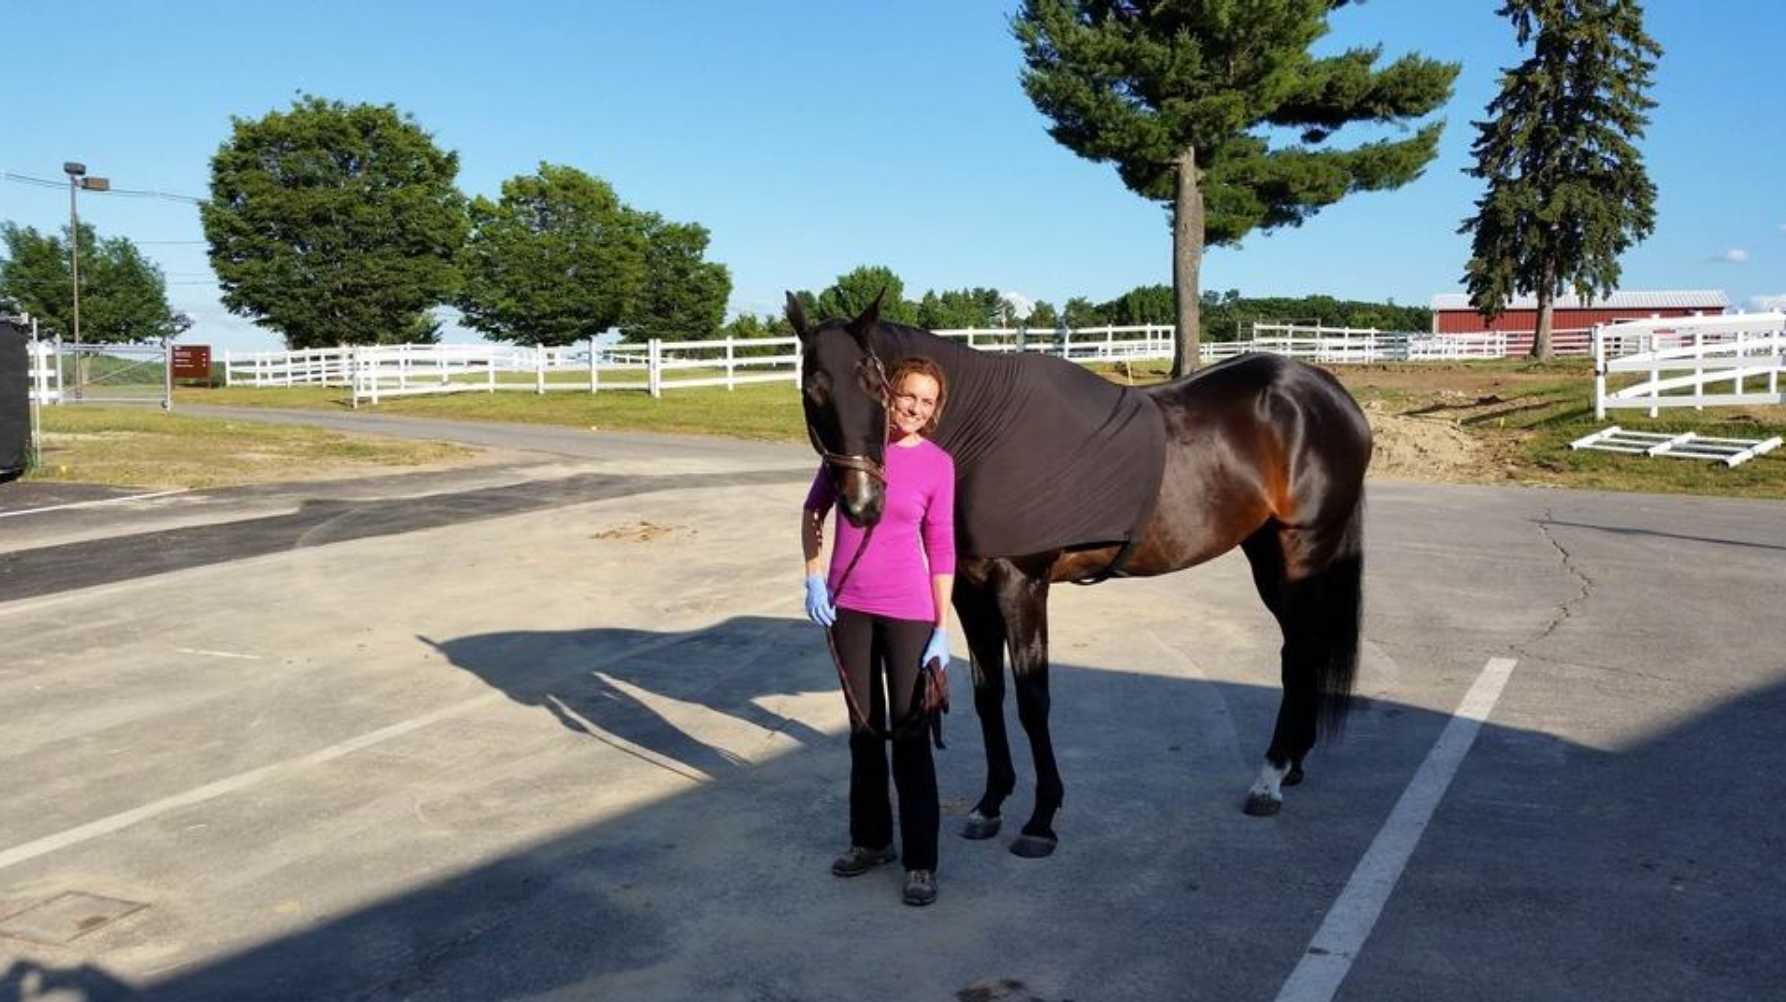 Mountain lion in Petersham? Owner of injured horse says DNA positive for cougar